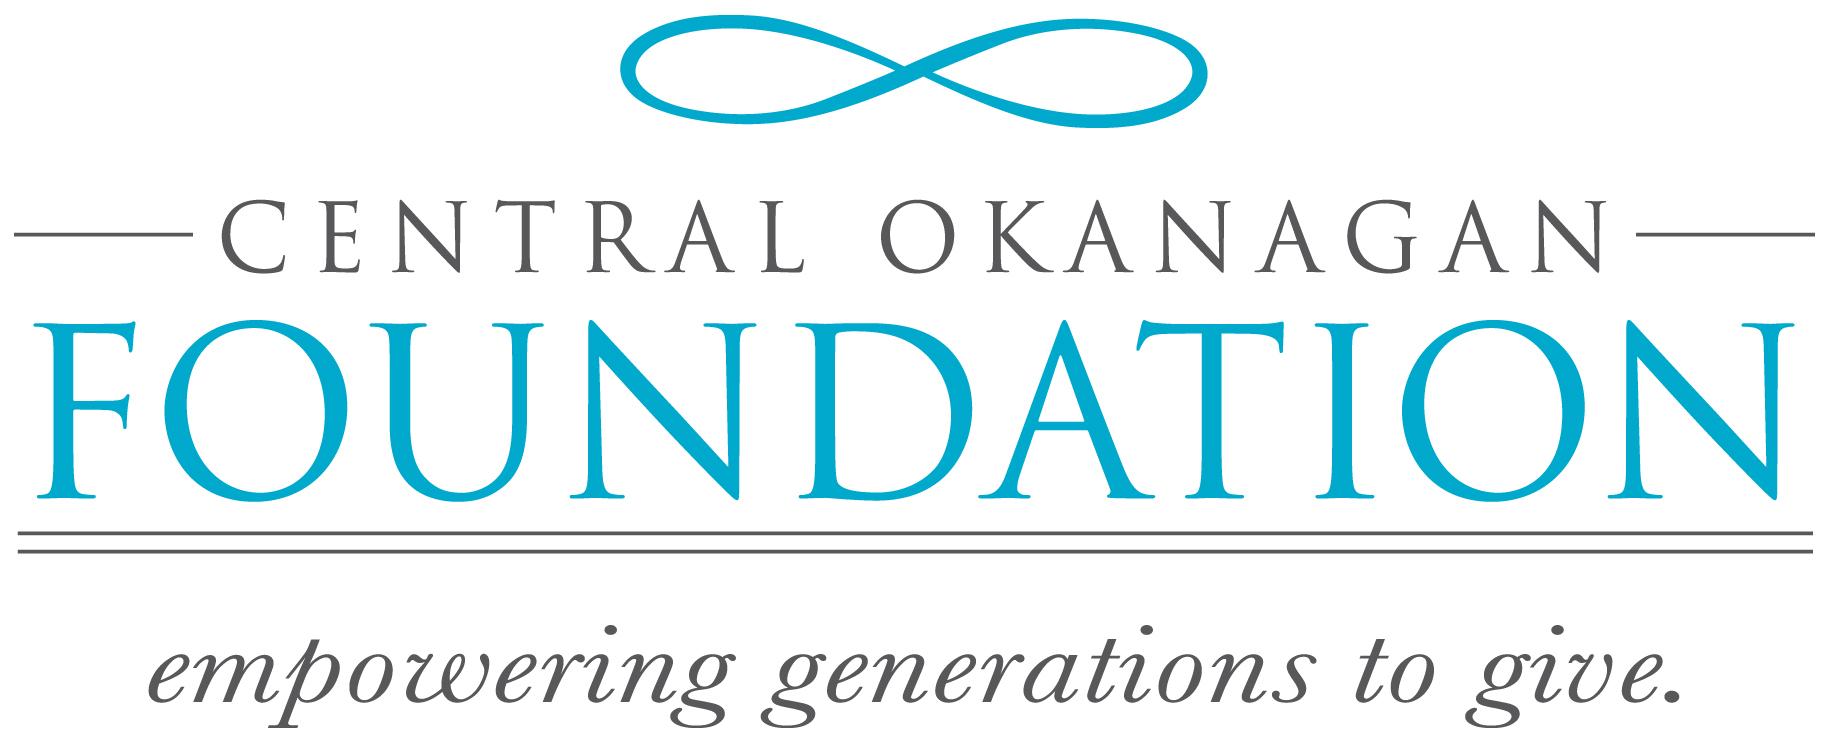 central Okanagan foundation logo